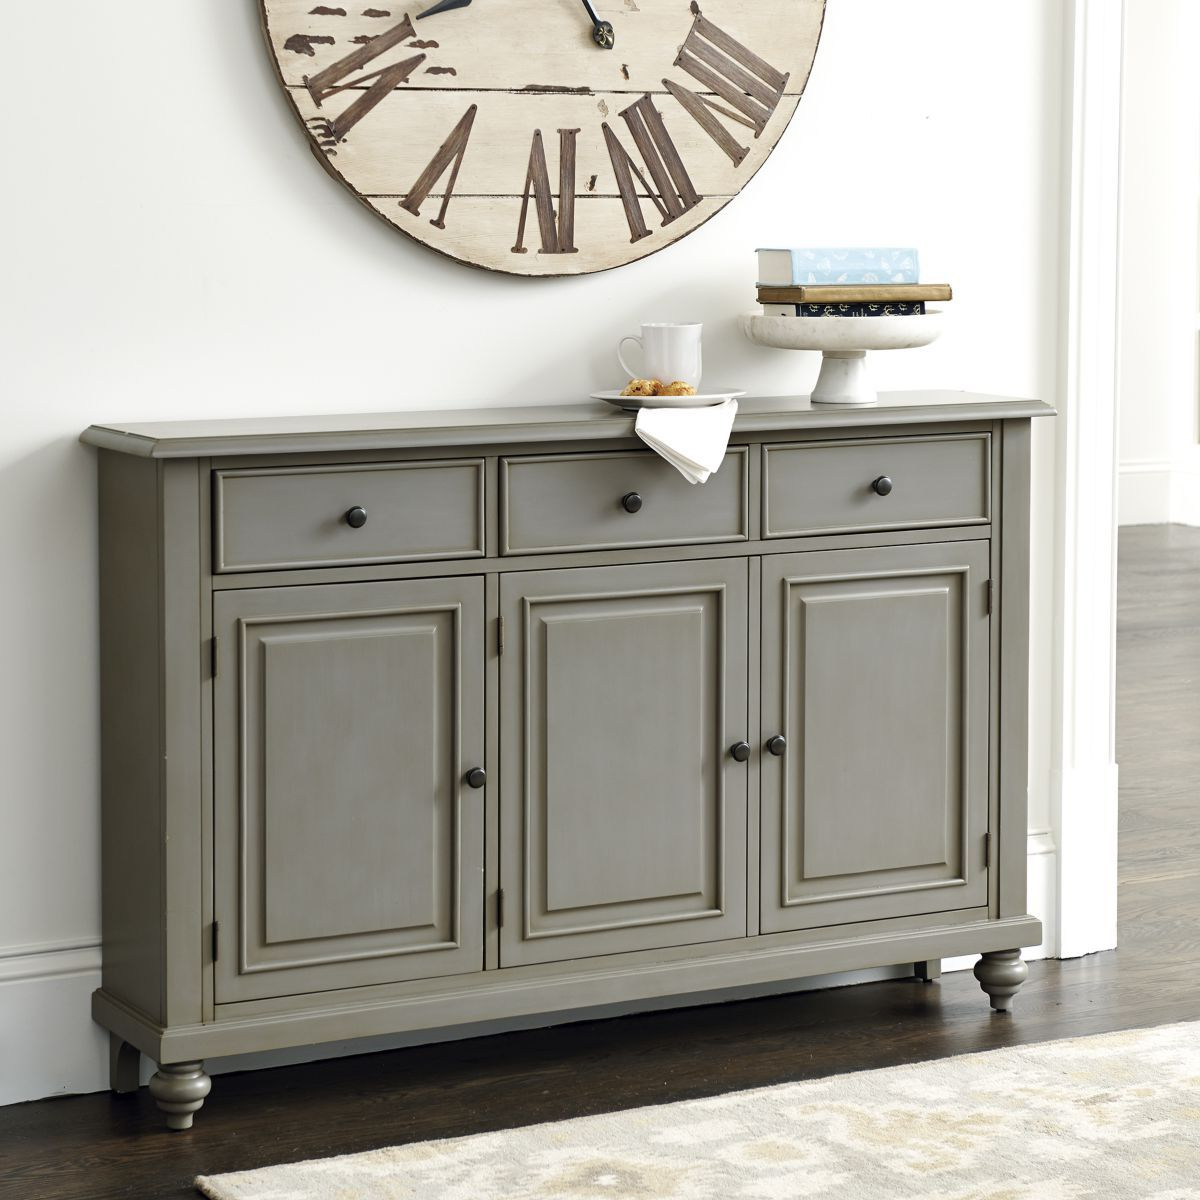 Martin 3 Door Console Table | Family Room Wall In 2019 Throughout Giulia 3 Drawer Credenzas (View 12 of 20)